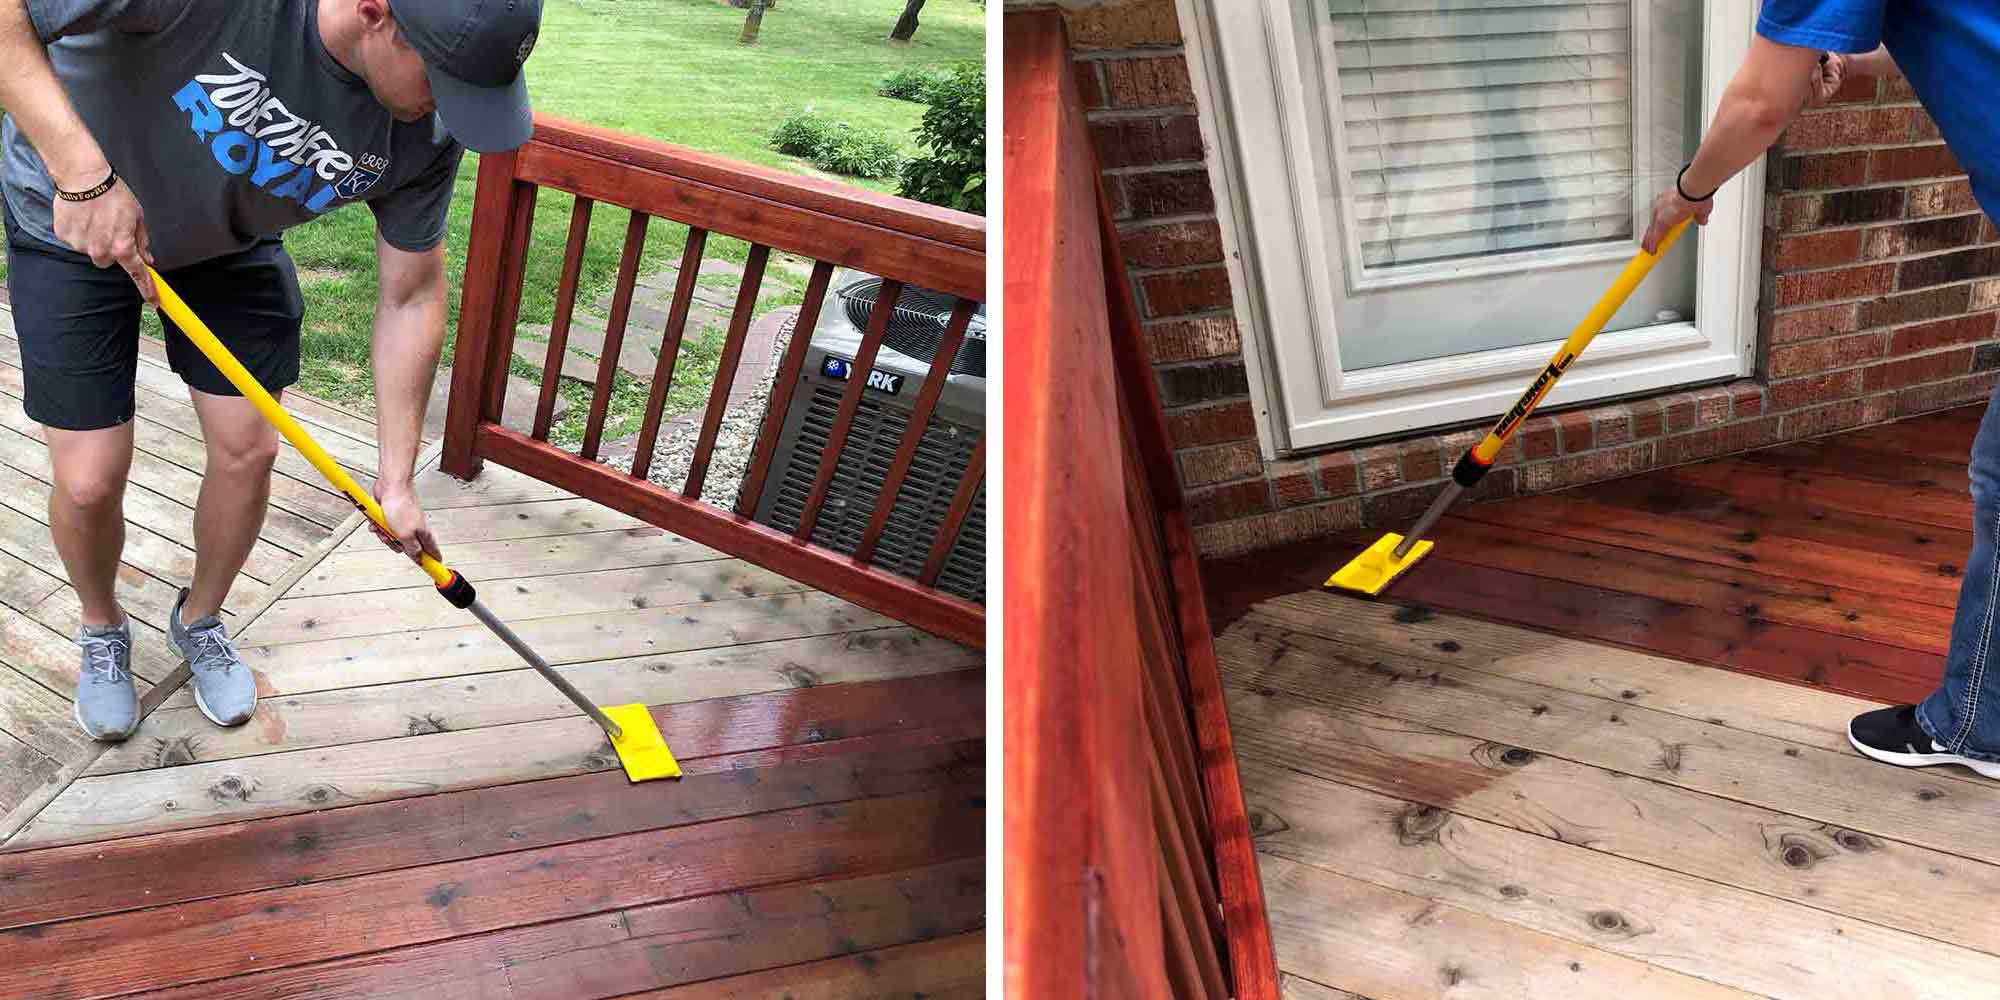 How to stain your deckboards with the 7 inch stain applicator.